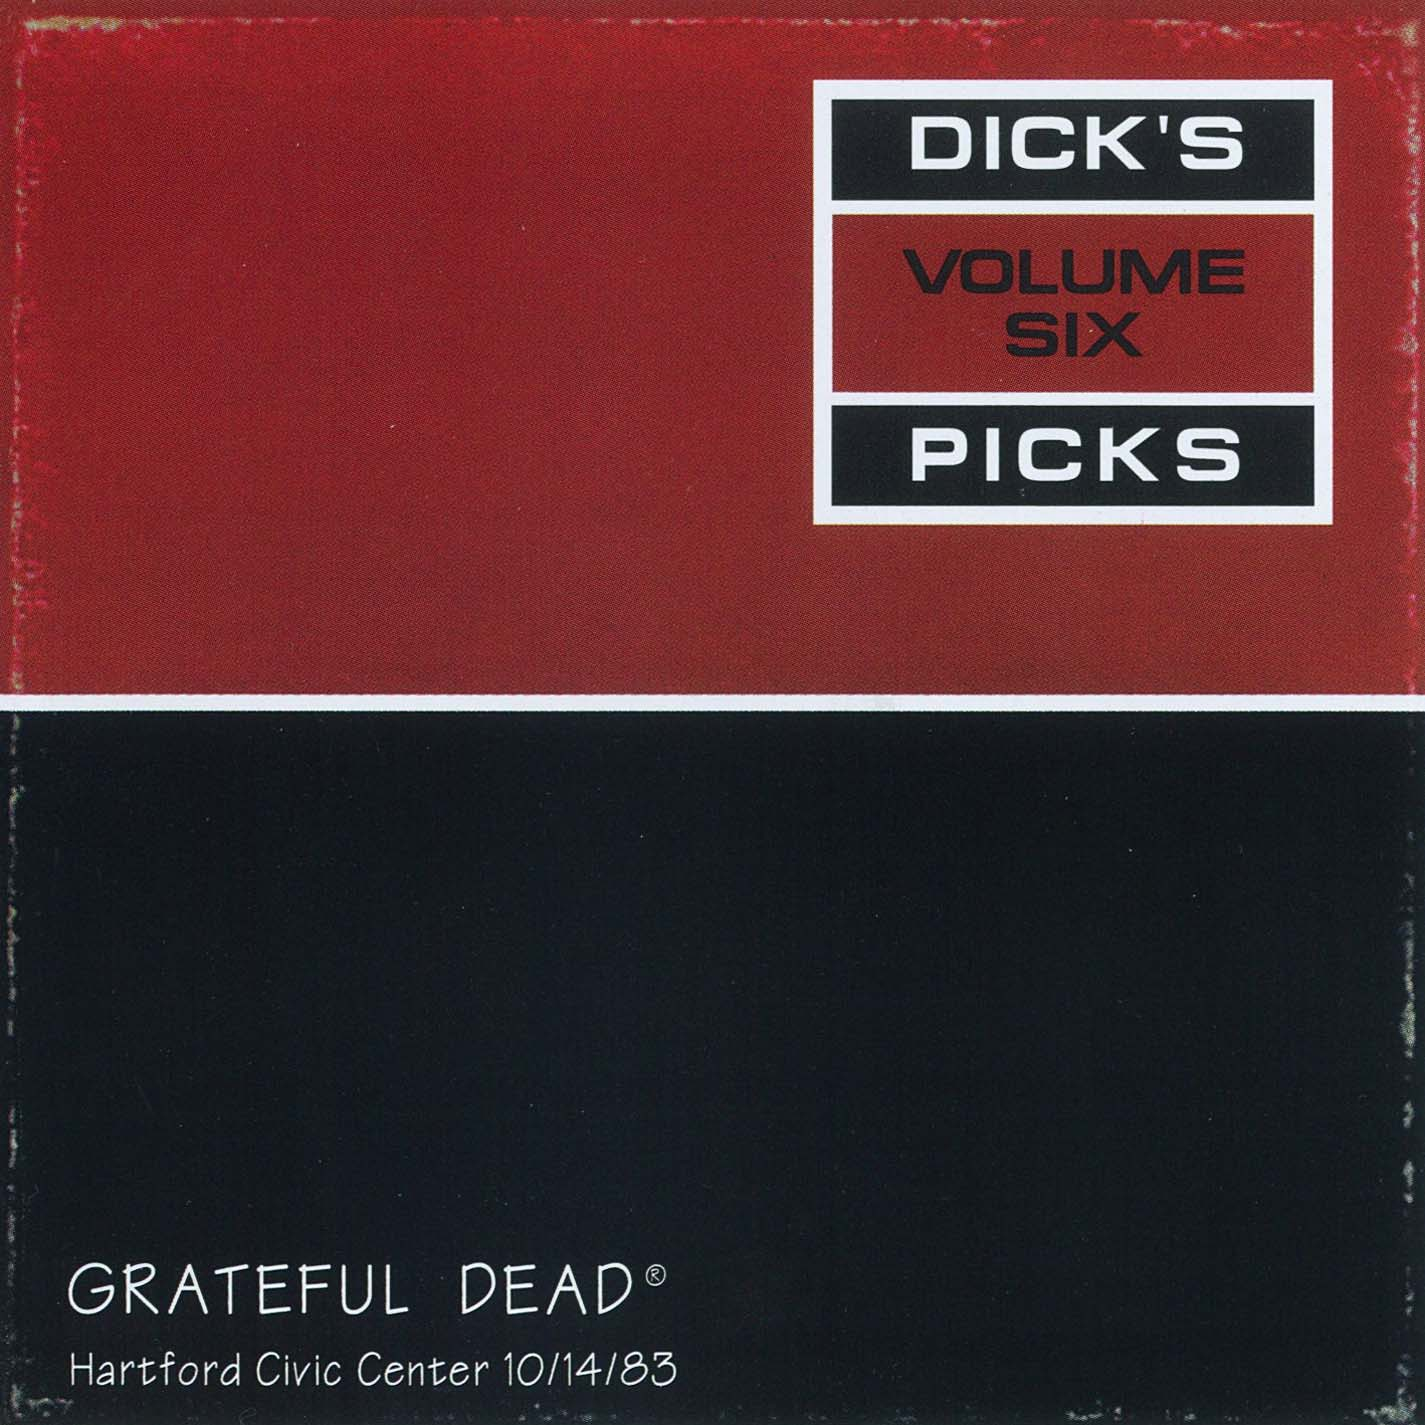 Grateful Dead Dick's Picks 6 album cover artwork